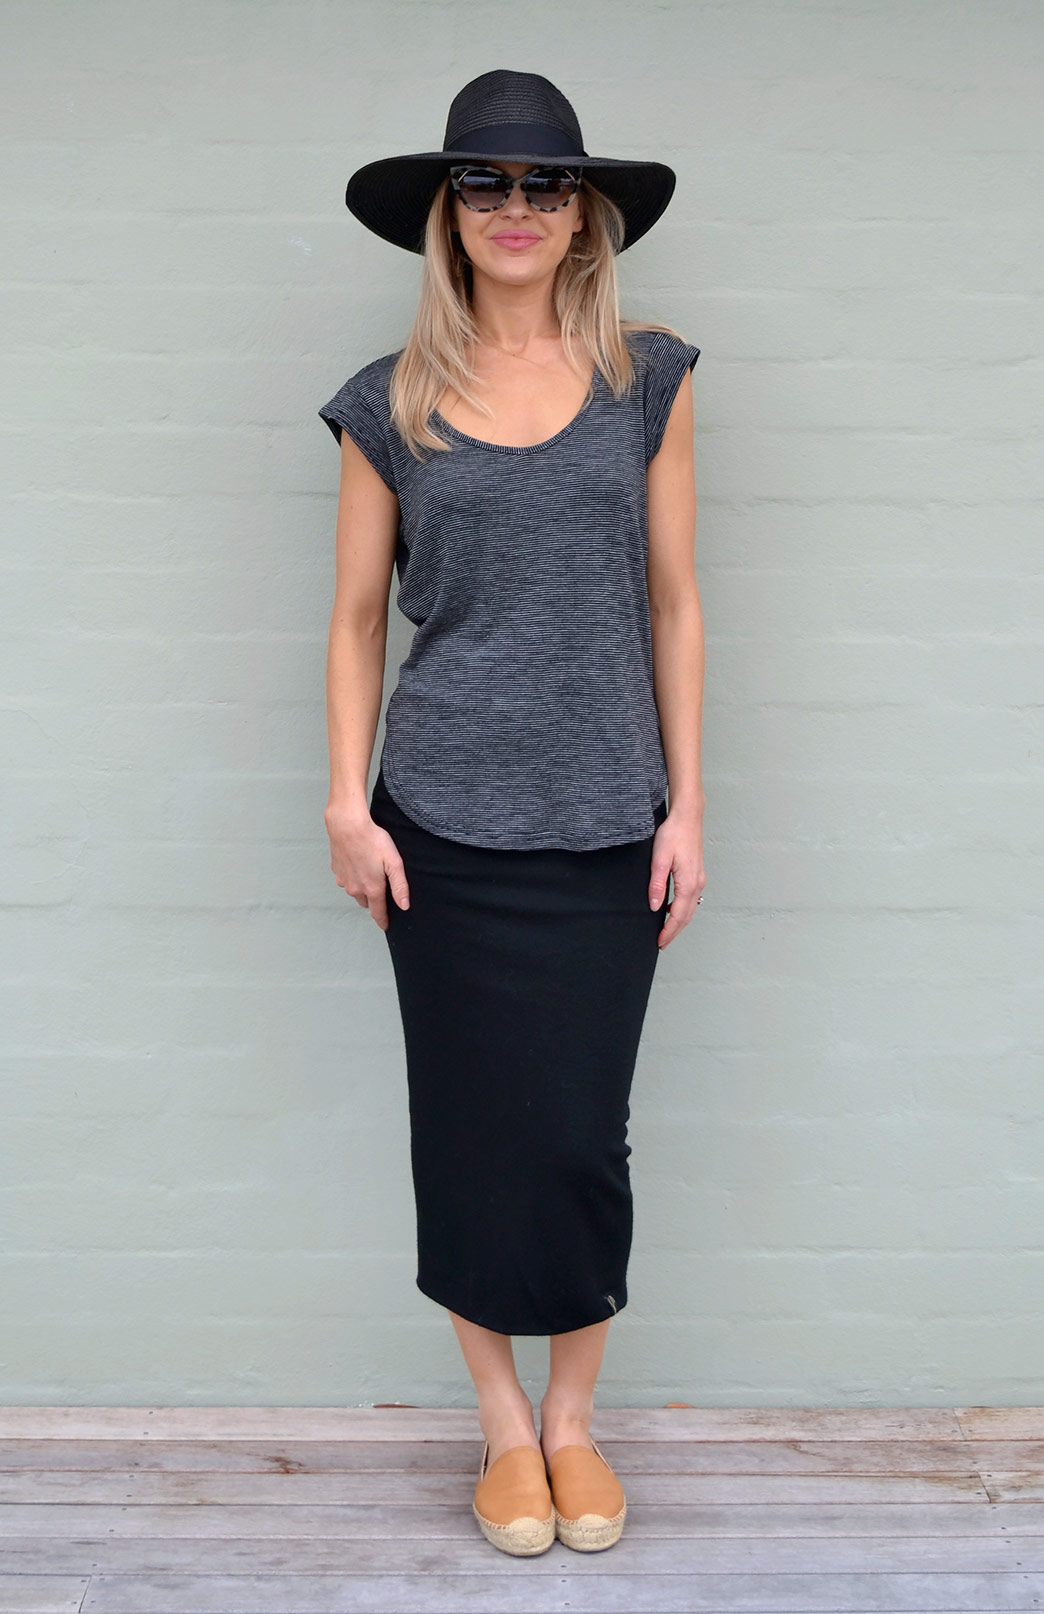 Long Tube Skirt - Women's Long Black Merino Wool Winter Skirt - Smitten Merino Tasmania Australia